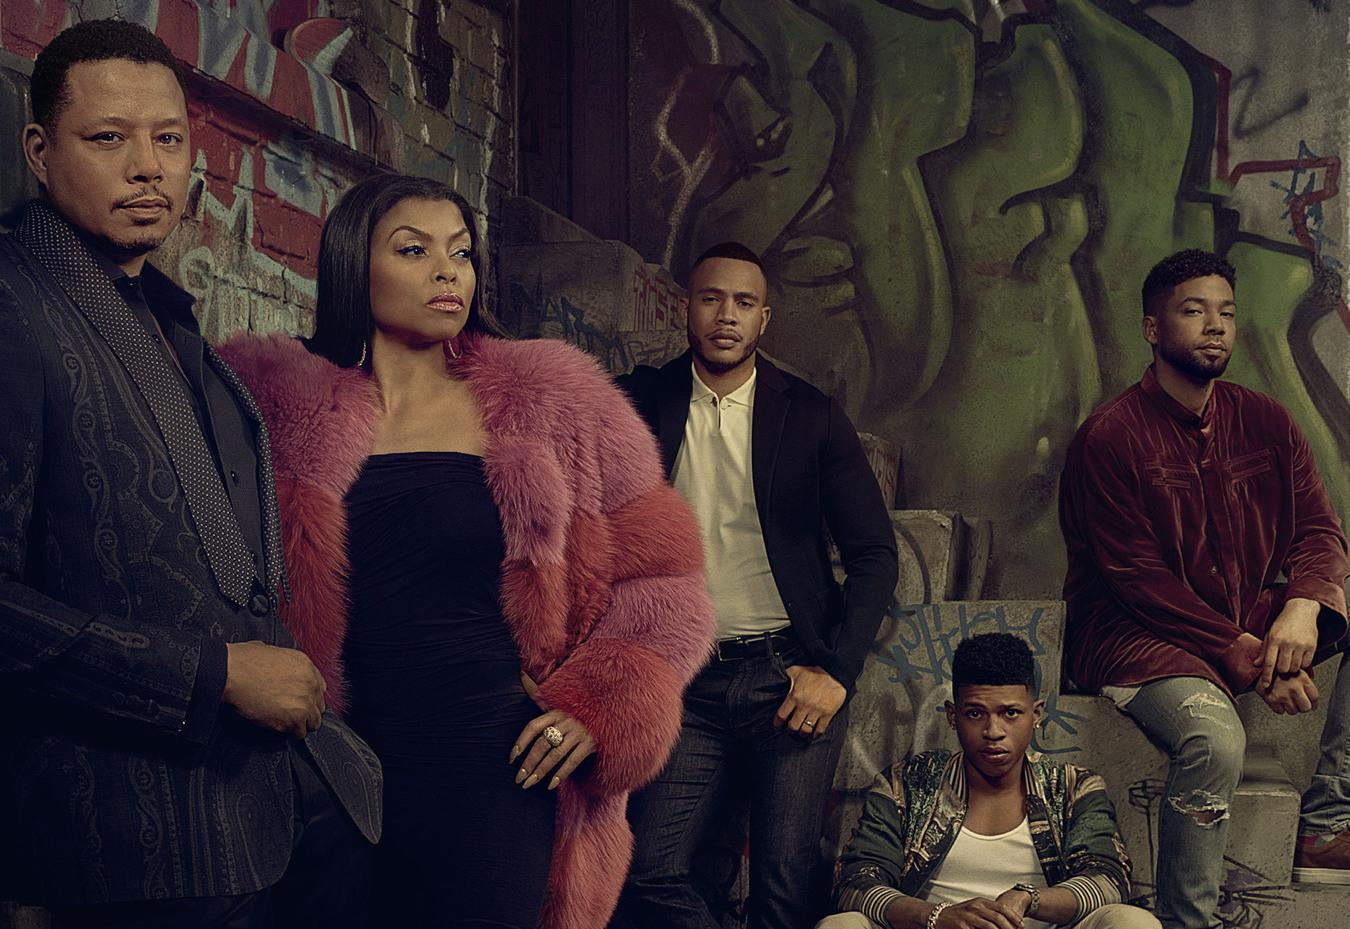 The 'Empire' Cast Throws Their Support Behind Hillary Clinton In Lee Daniels-Directed Ad